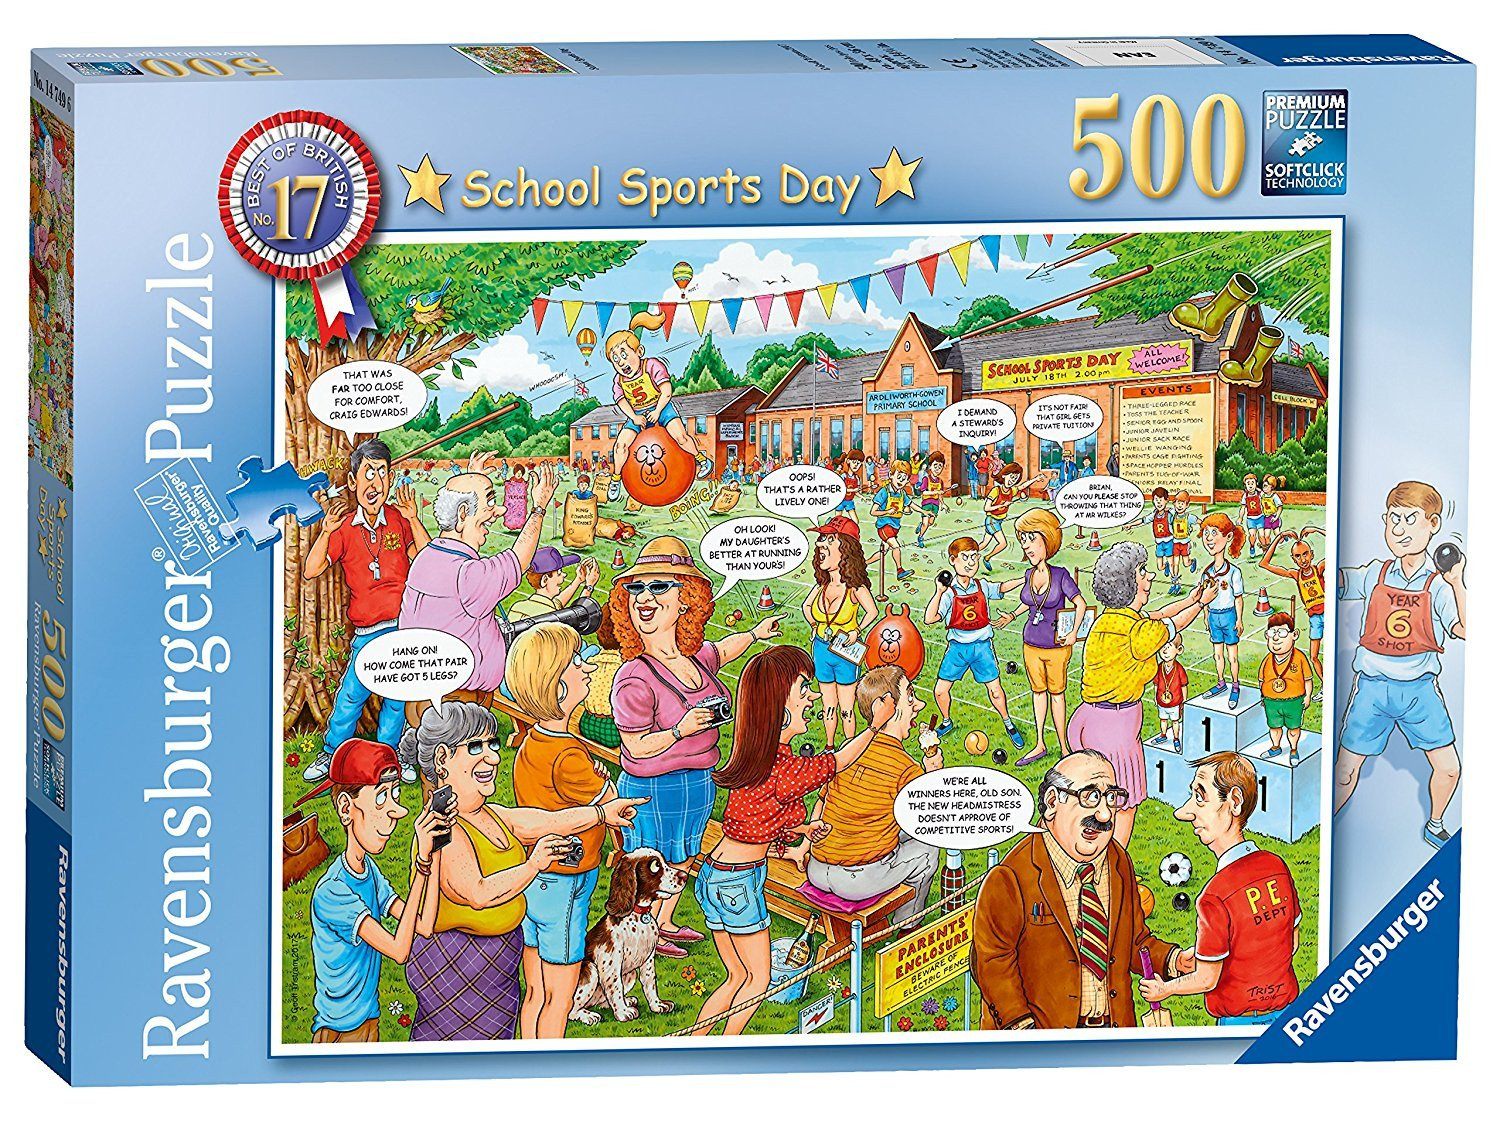 500pc Geoff Tristram ~ Best of British No.17 ~ School Sports Day Puzzle By Ravensburger